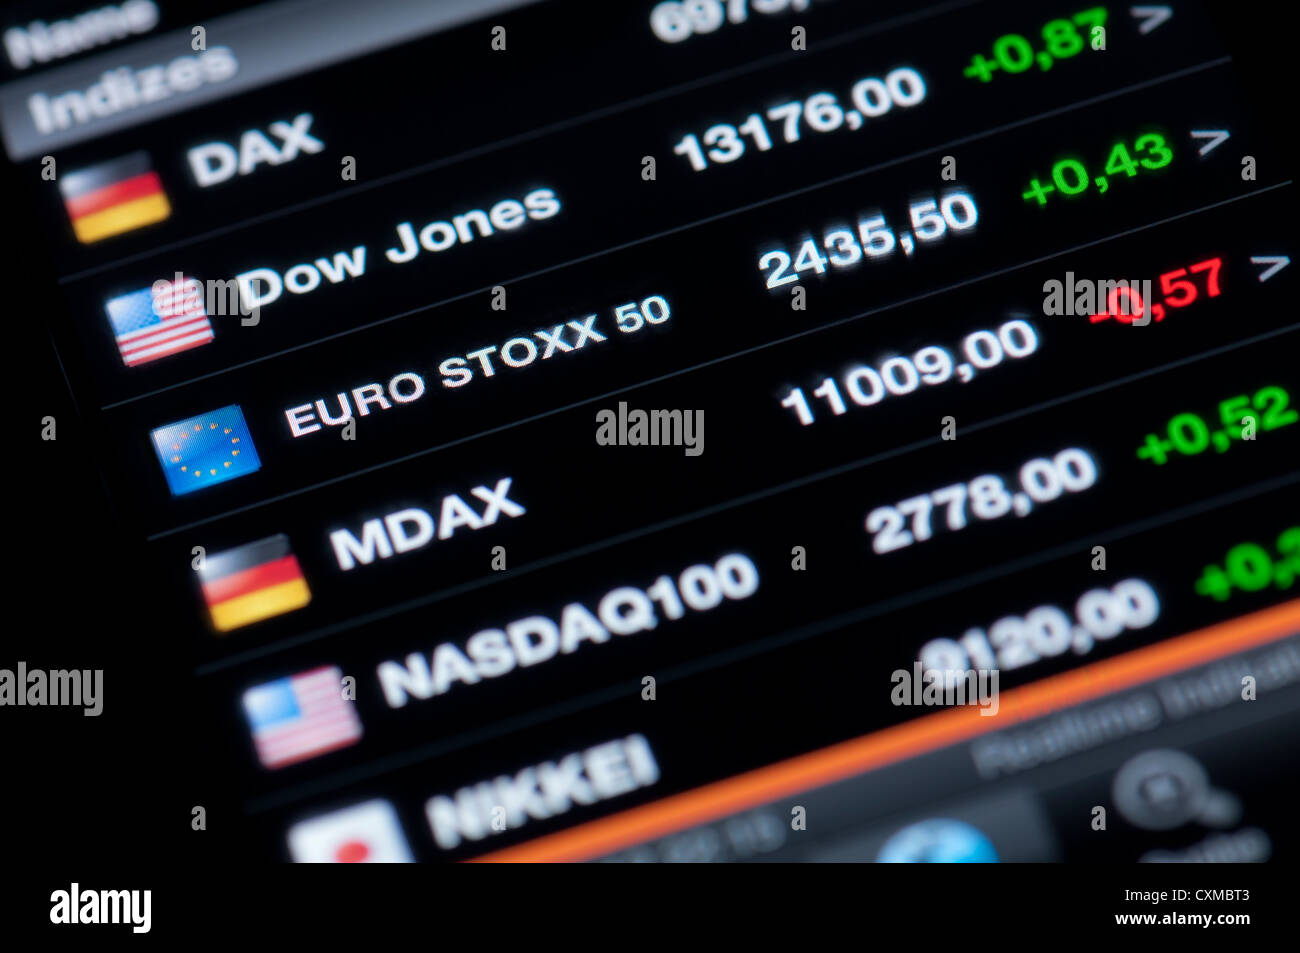 List of stock market indices on a high resolution LCD screen presented on iPhone 4 Stocks application. - Stock Image